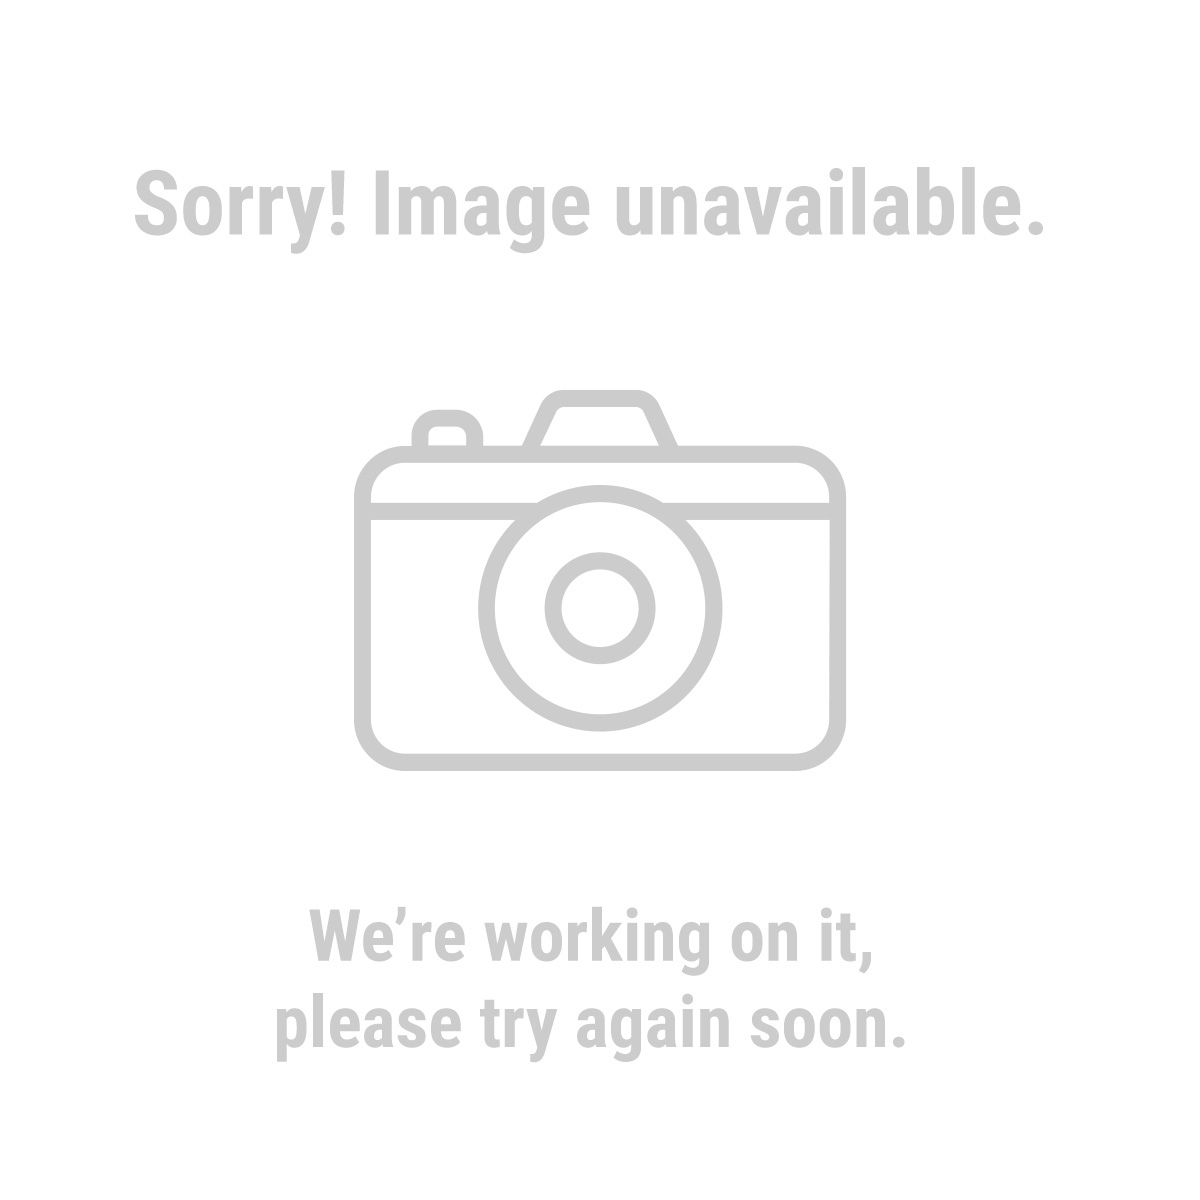 HFT 91470 40 Ft. Retractable Cord Reel with Triple Tap